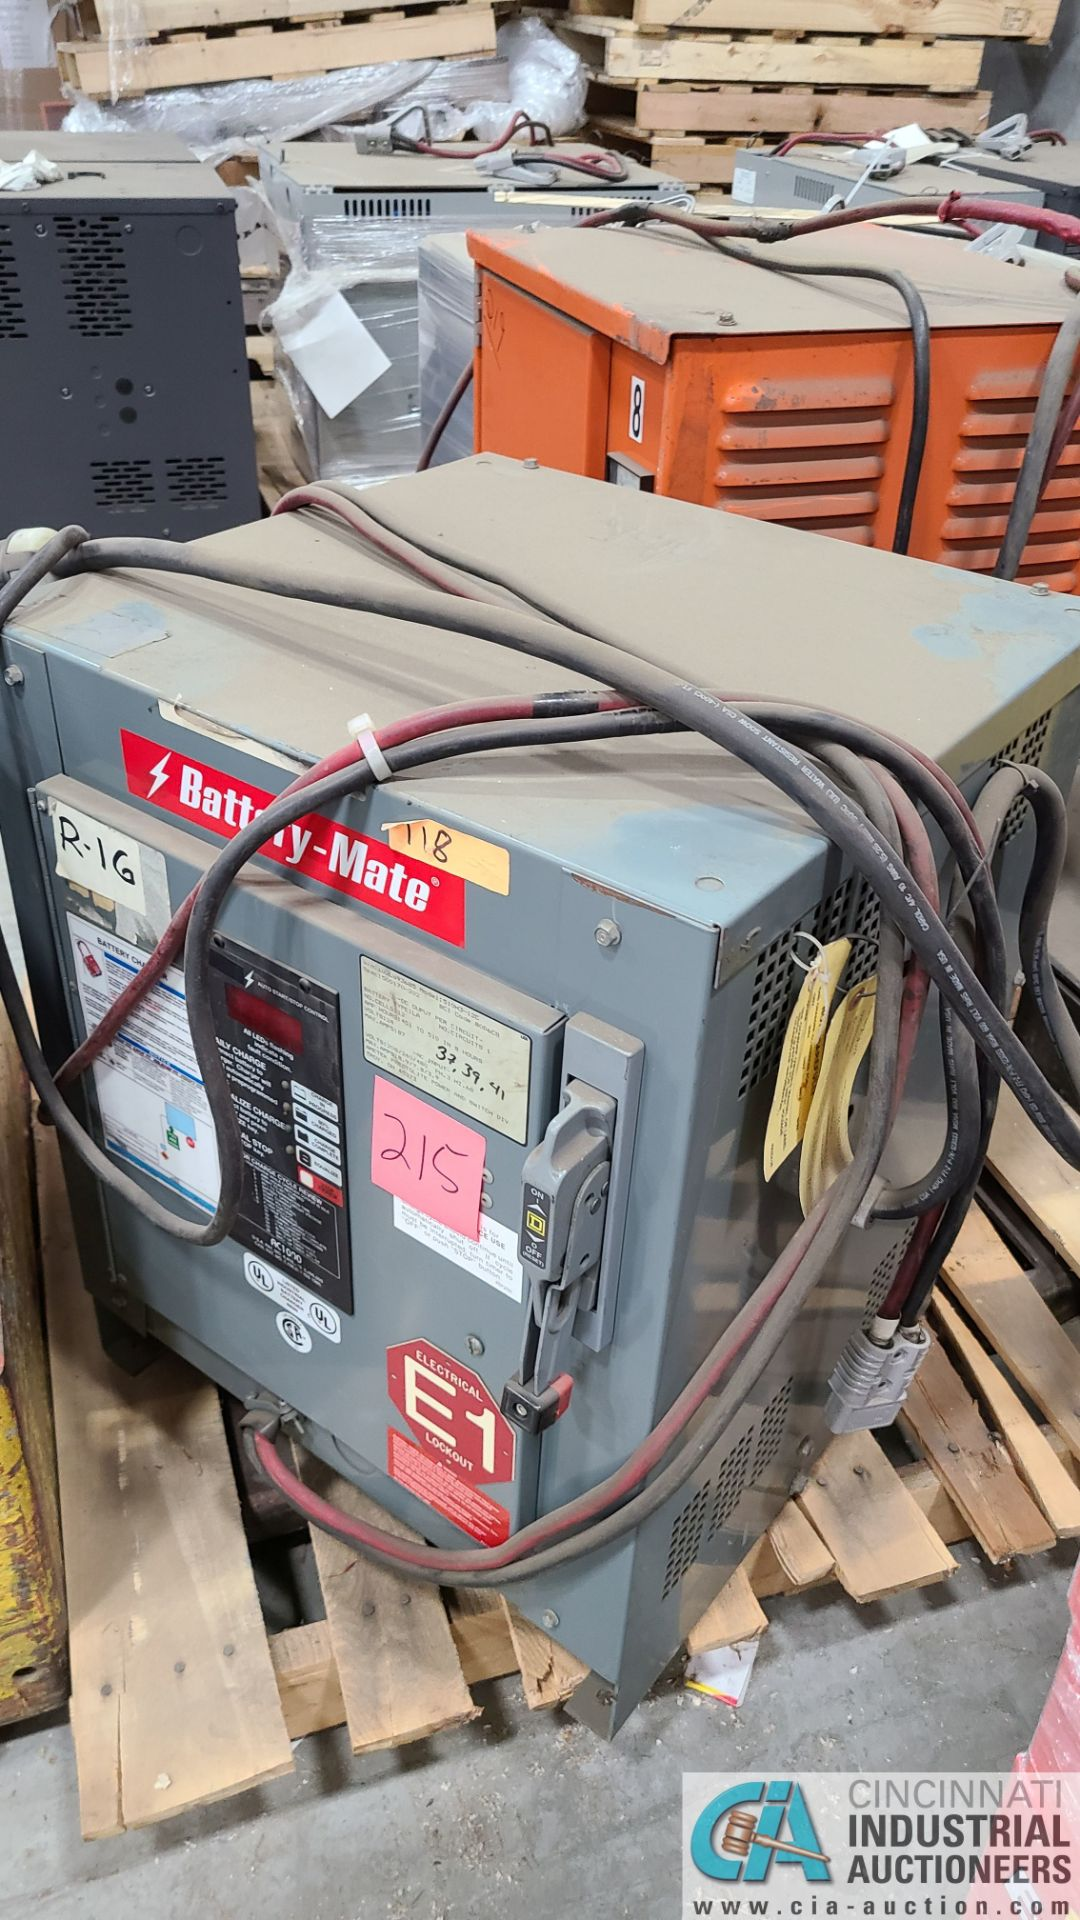 24-VOLT BATTERY MATE MODEL 51OH3-12C BATTERY CHARGER; S/N 12CS93685 (2570 ORCHARD GATEWAY BLVD., - Image 2 of 3